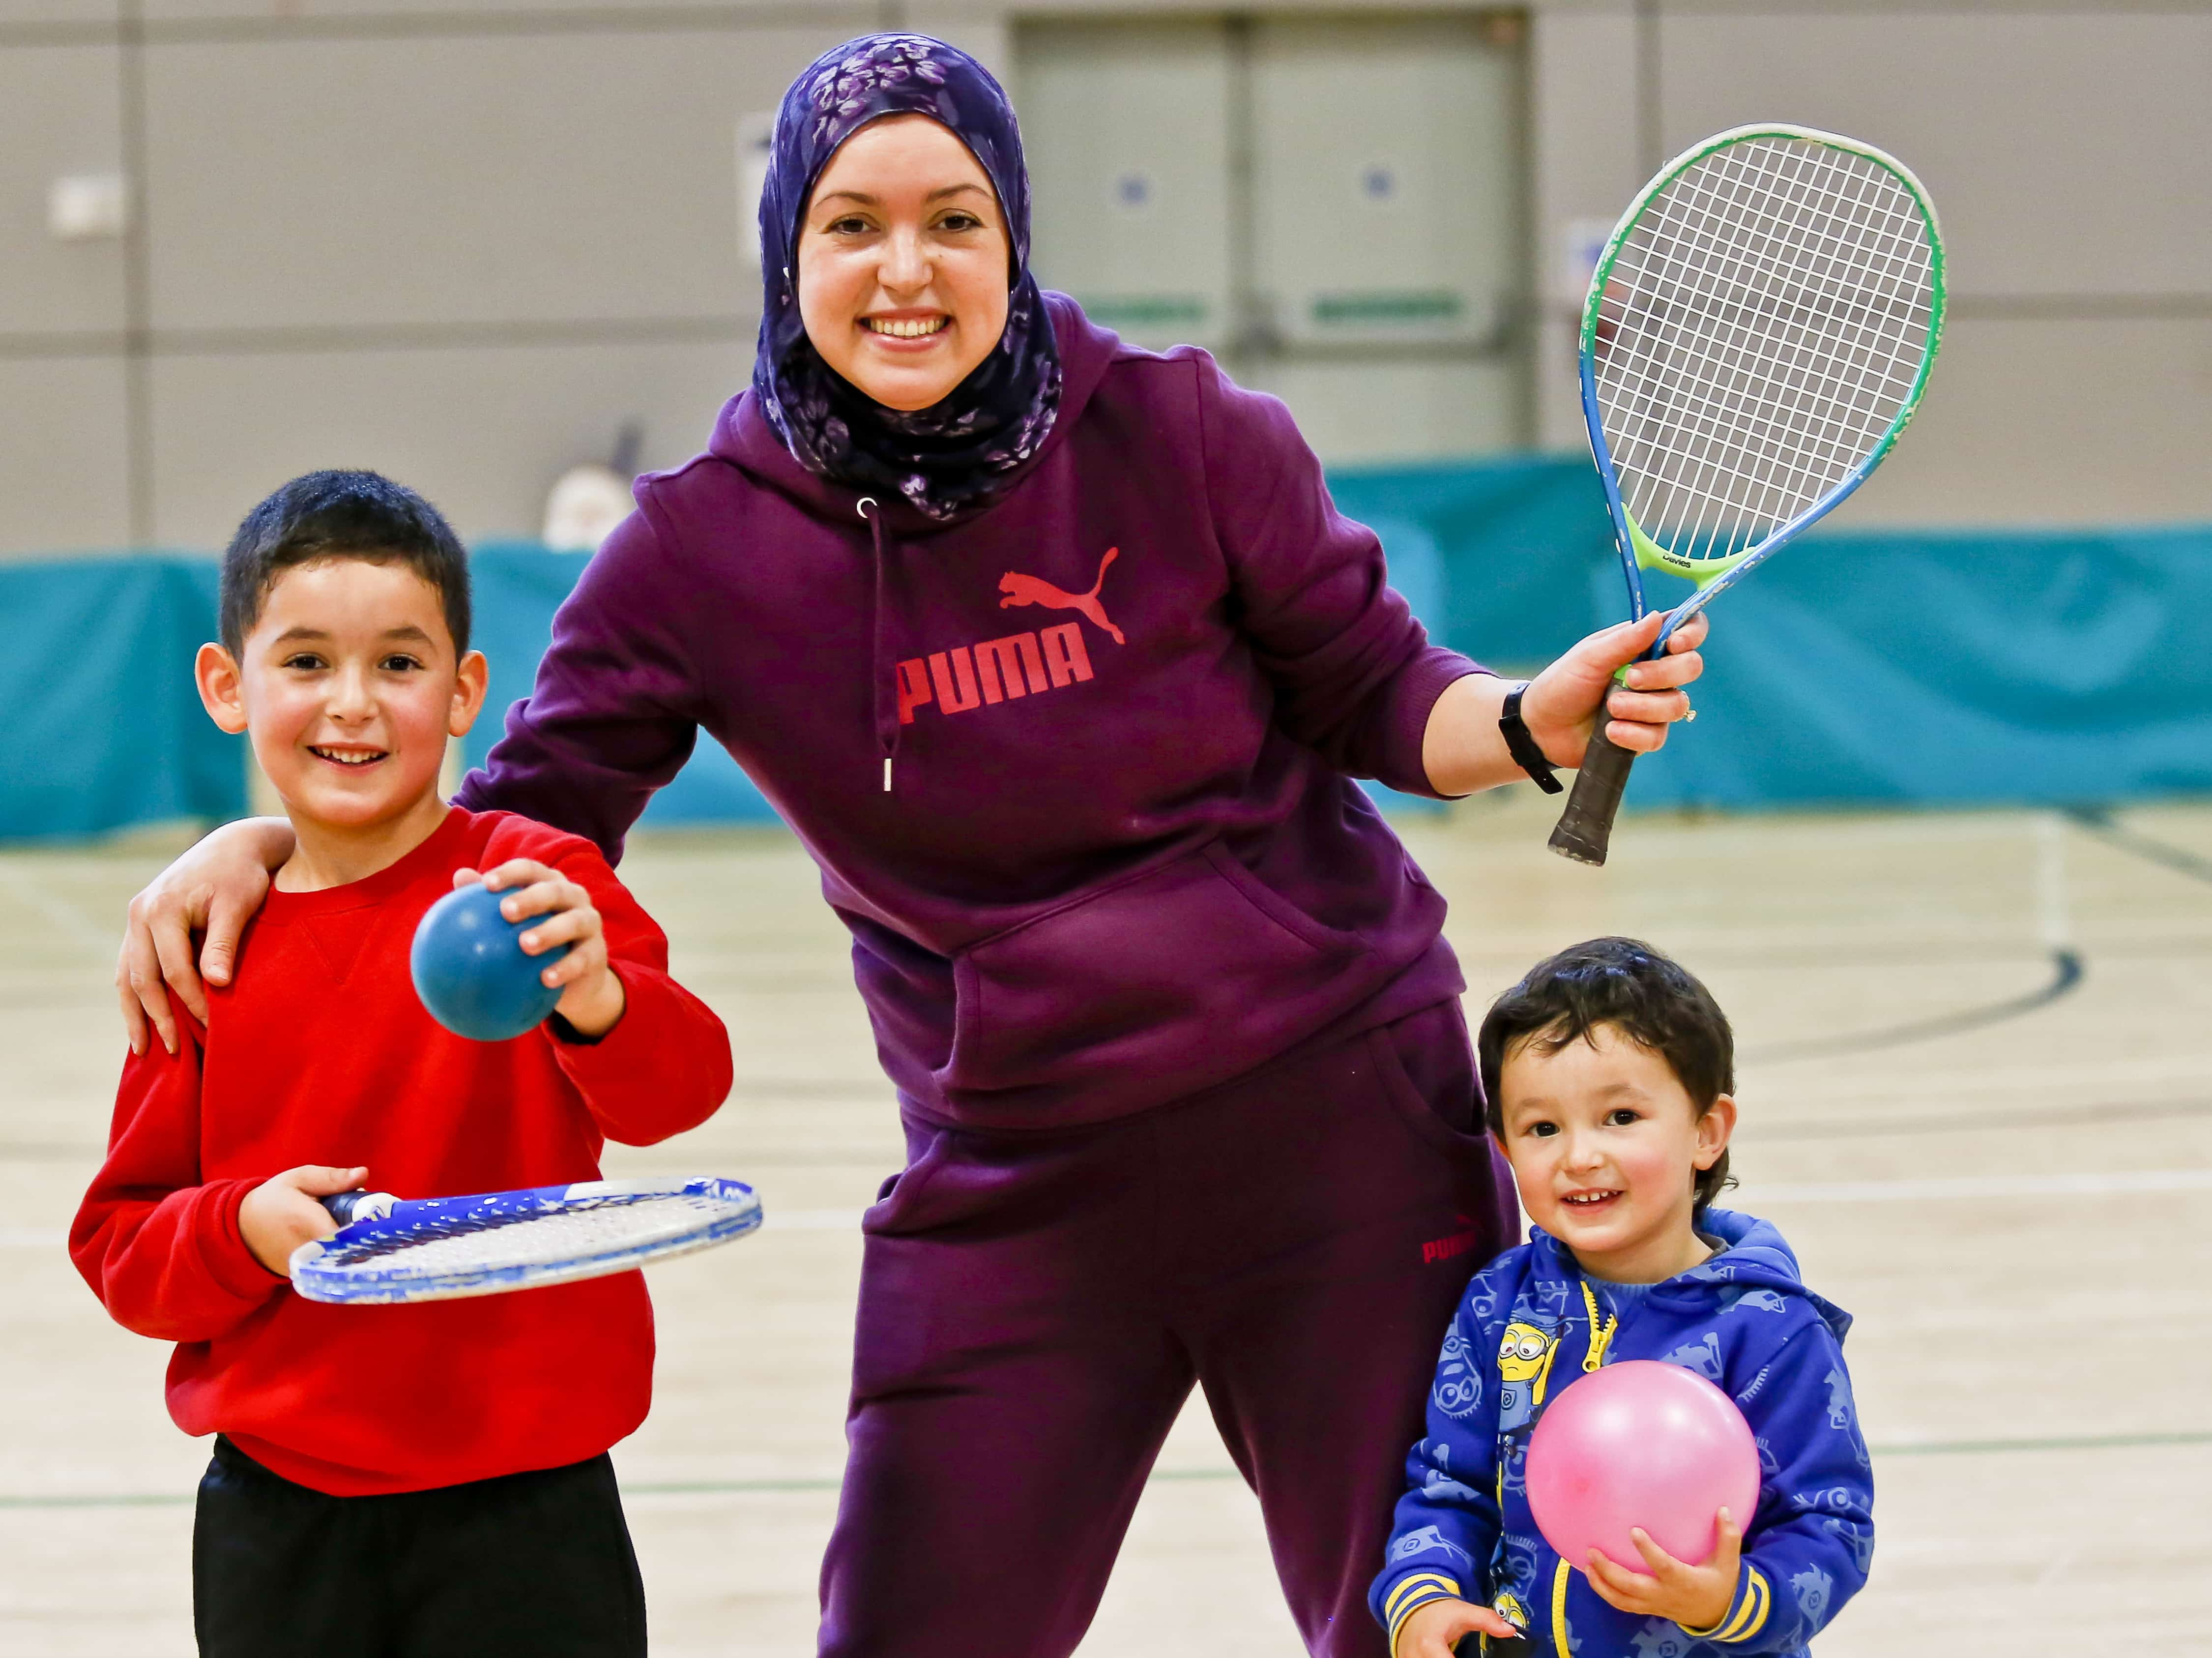 mum and two children joining in activity session